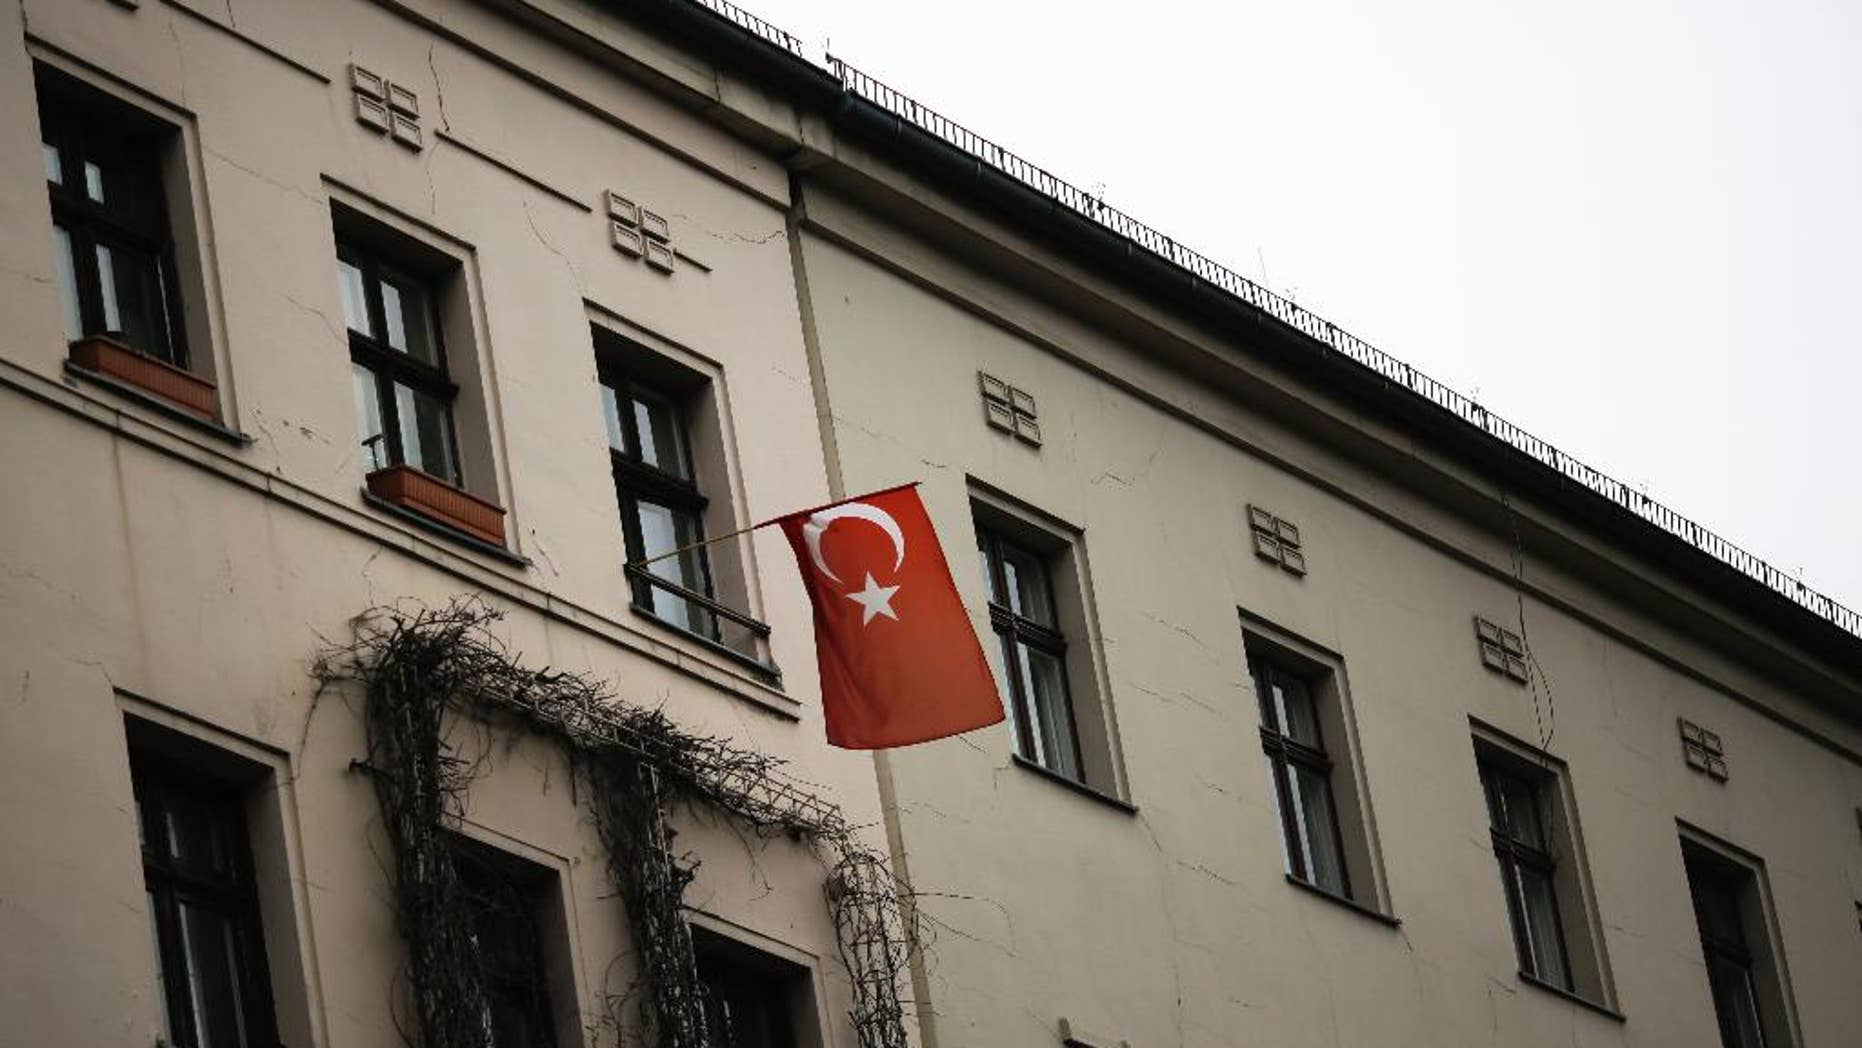 A Turkish national flag is displayed at an apartment building in the district of Kreuzberg in Berlin, Tuesday, March 14, 2017. (AP Photo/Markus Schreiber)